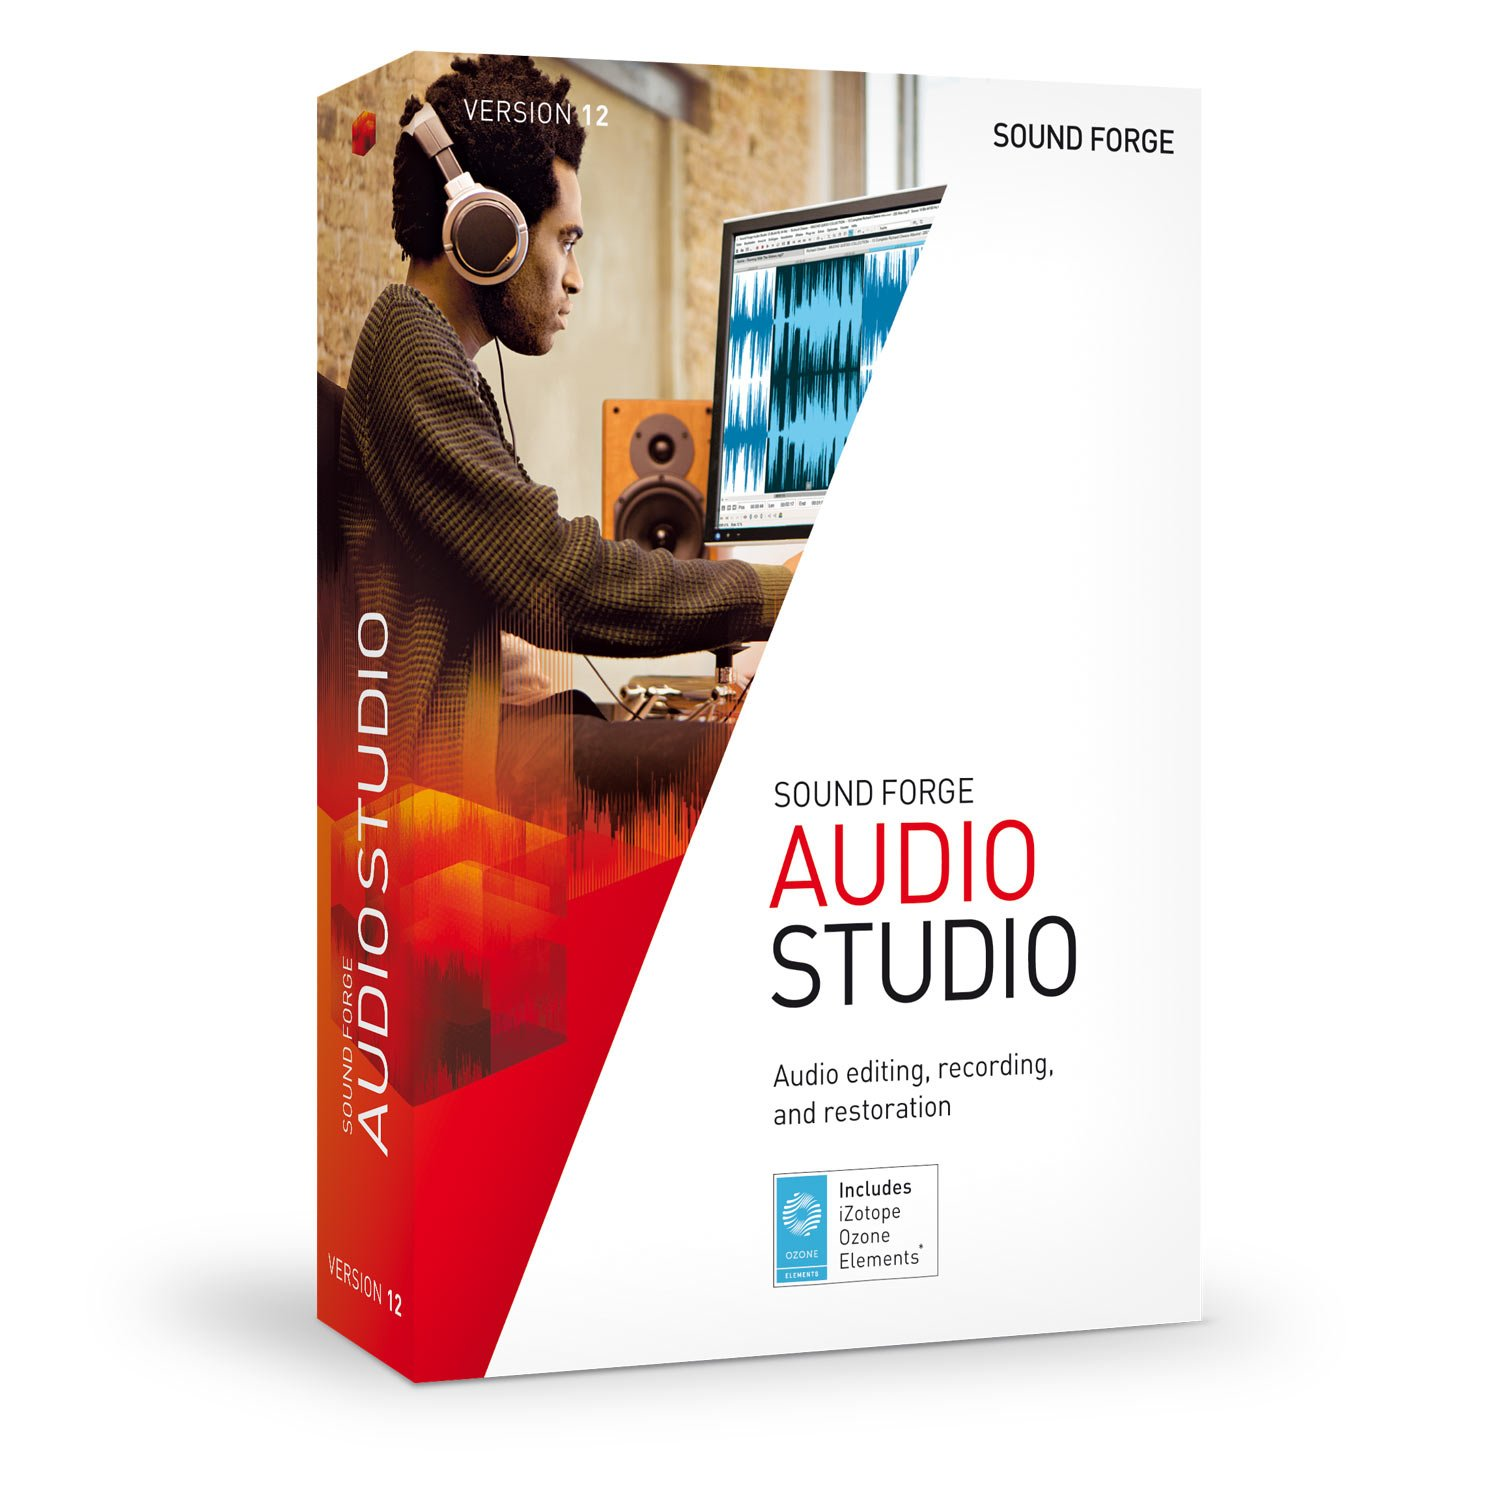 SOUND FORGE Audio Studio - Version 12 - audio editor including mastering plug-in by Sound Forge